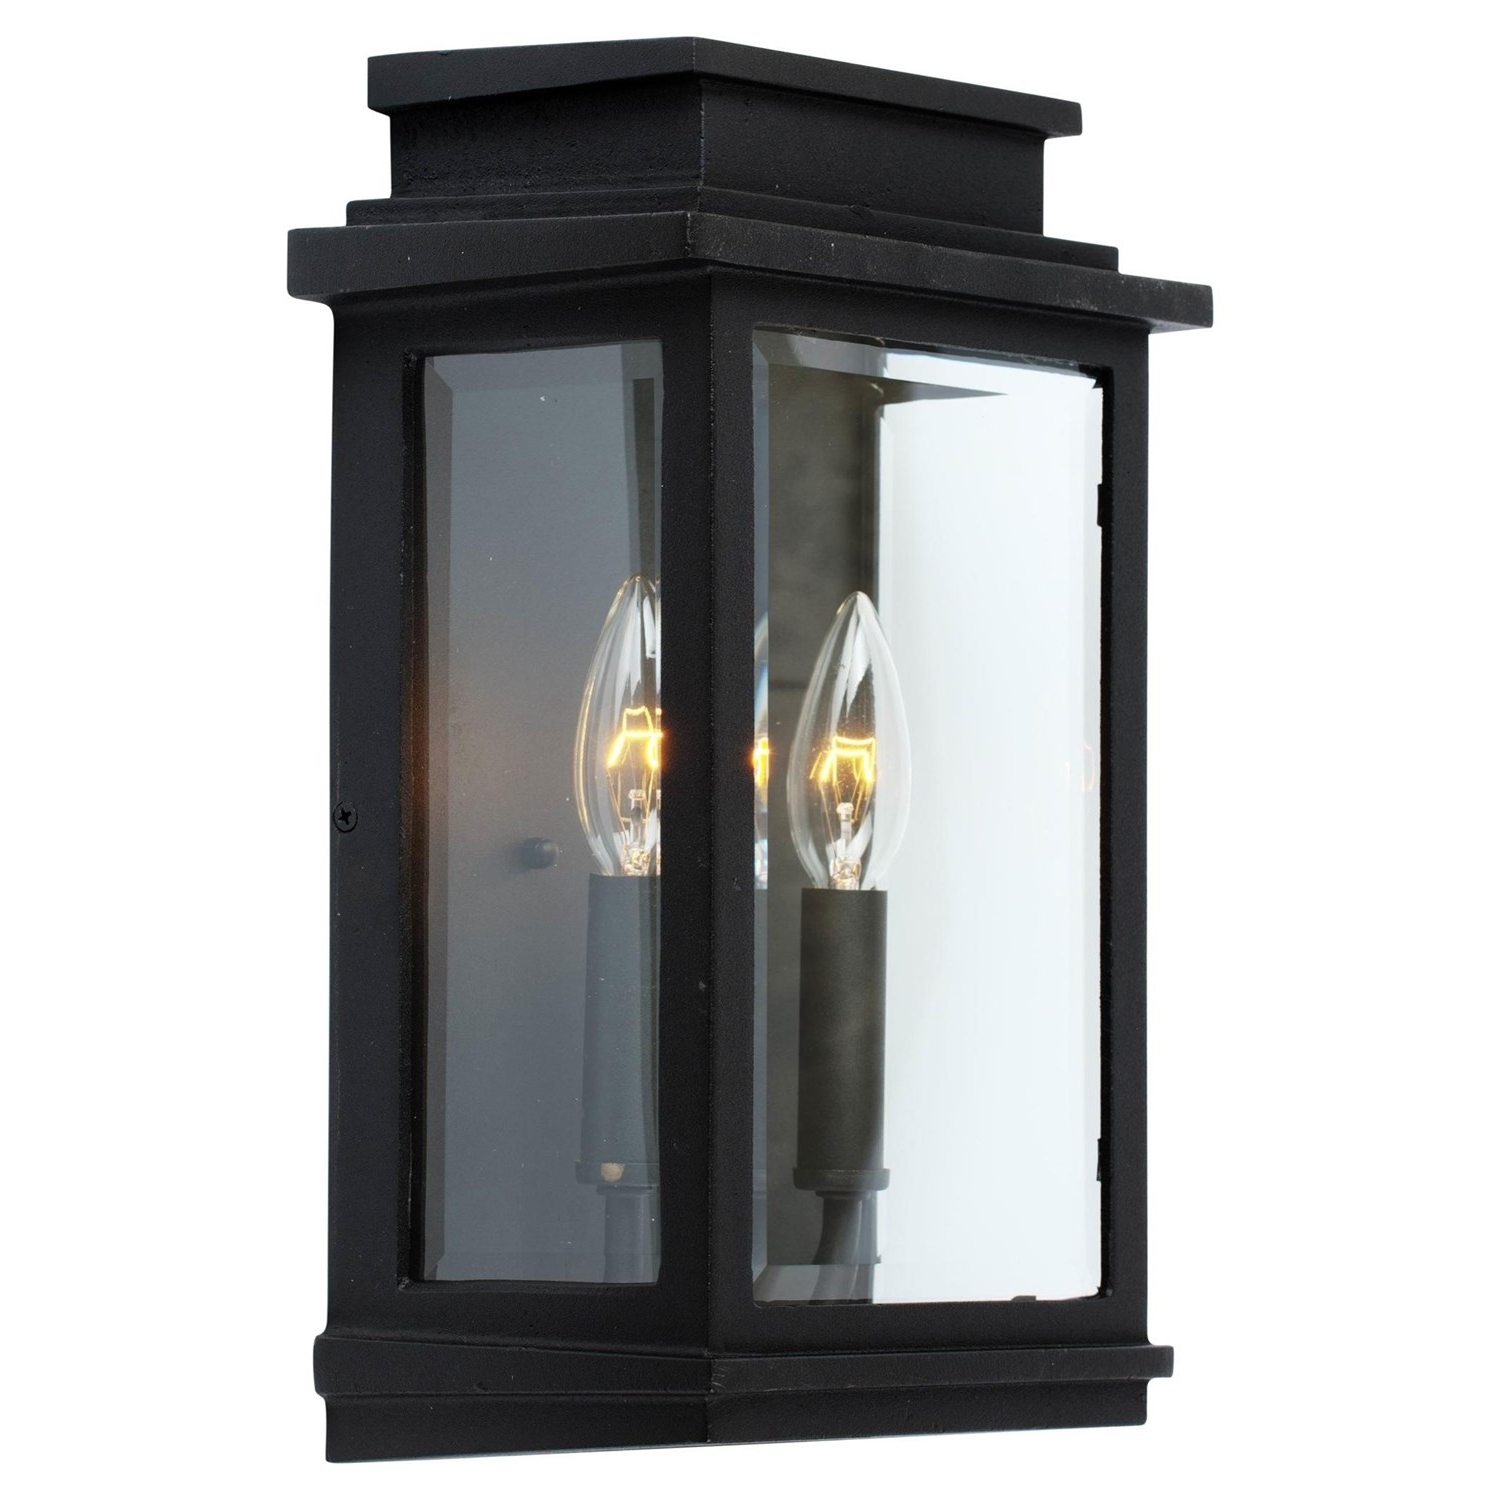 Trendy Artcraft Ac8391 Fremont 13 1 2 2 Light Outdoor Wall Sconce With Regard To Arts And Crafts Outdoor Wall Lighting (View 12 of 20)